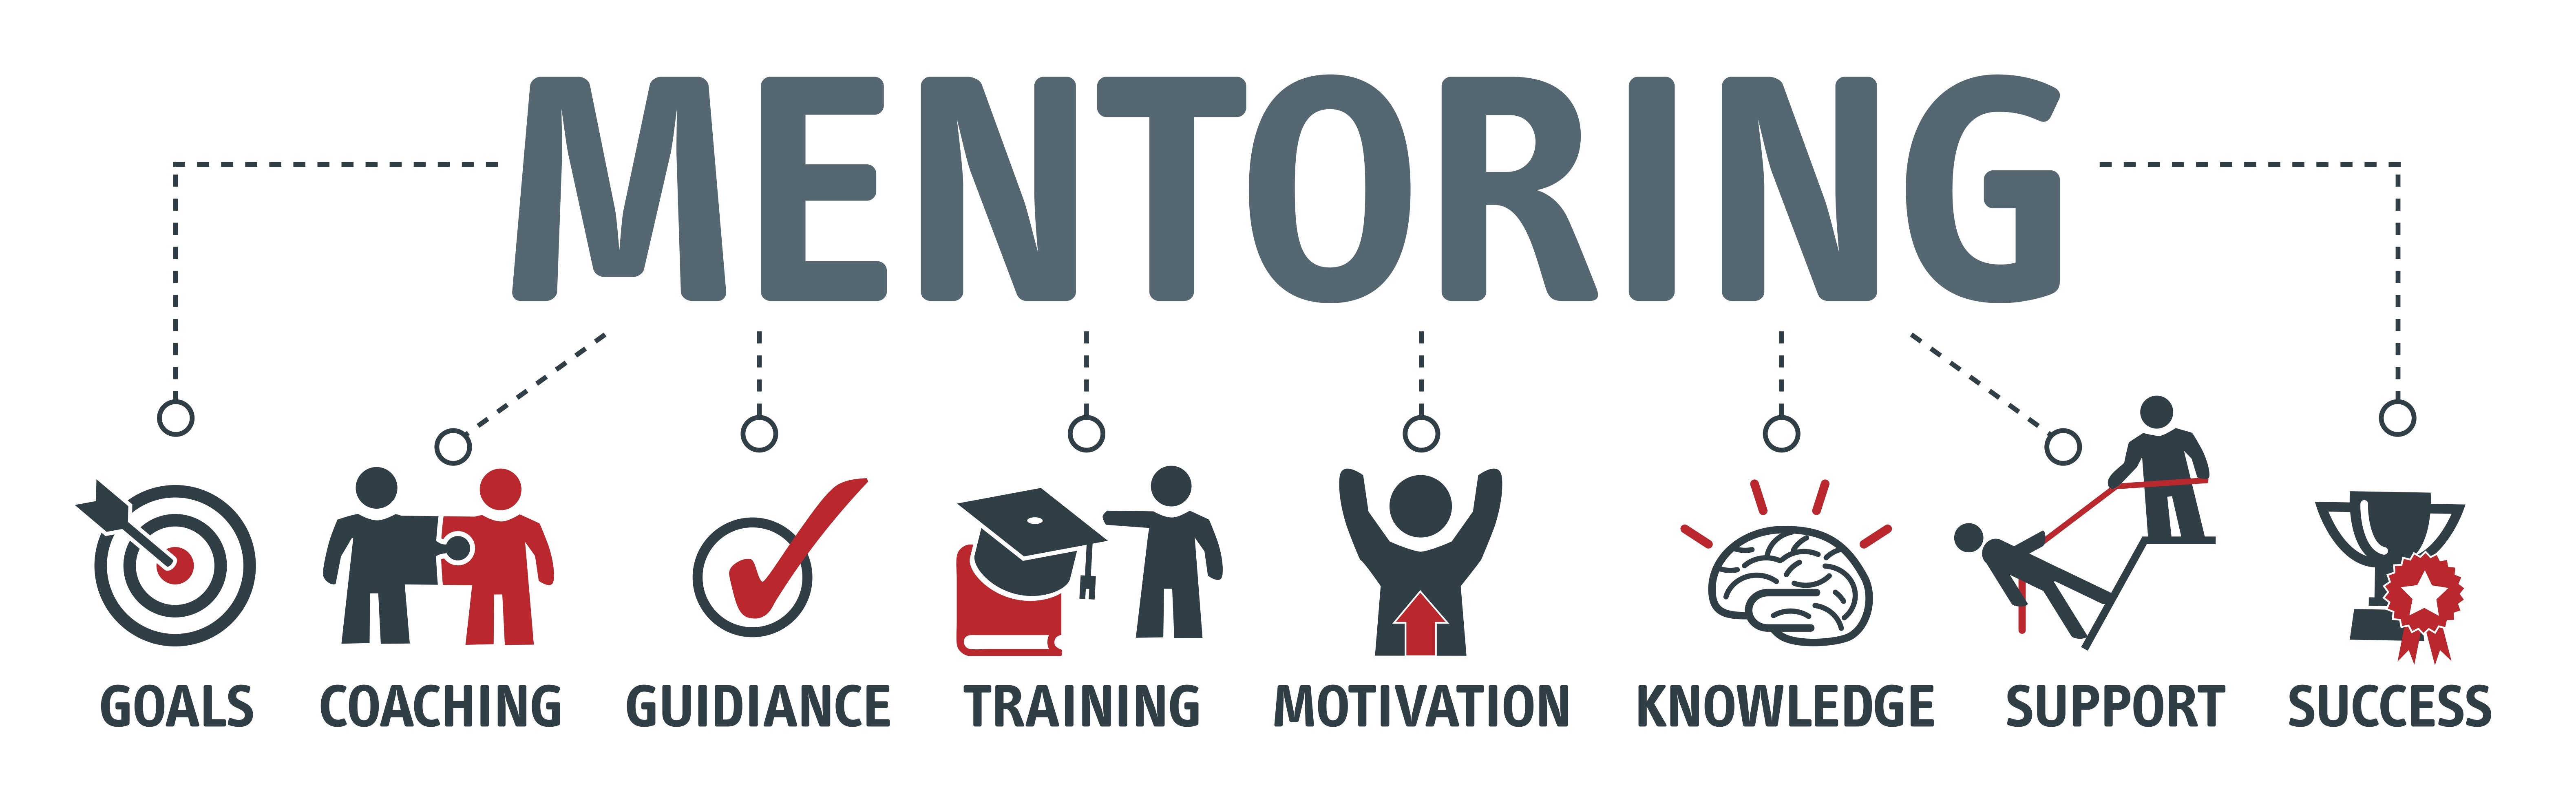 Mentoring graph down to goals coaching guidance training motivation knowledge support success